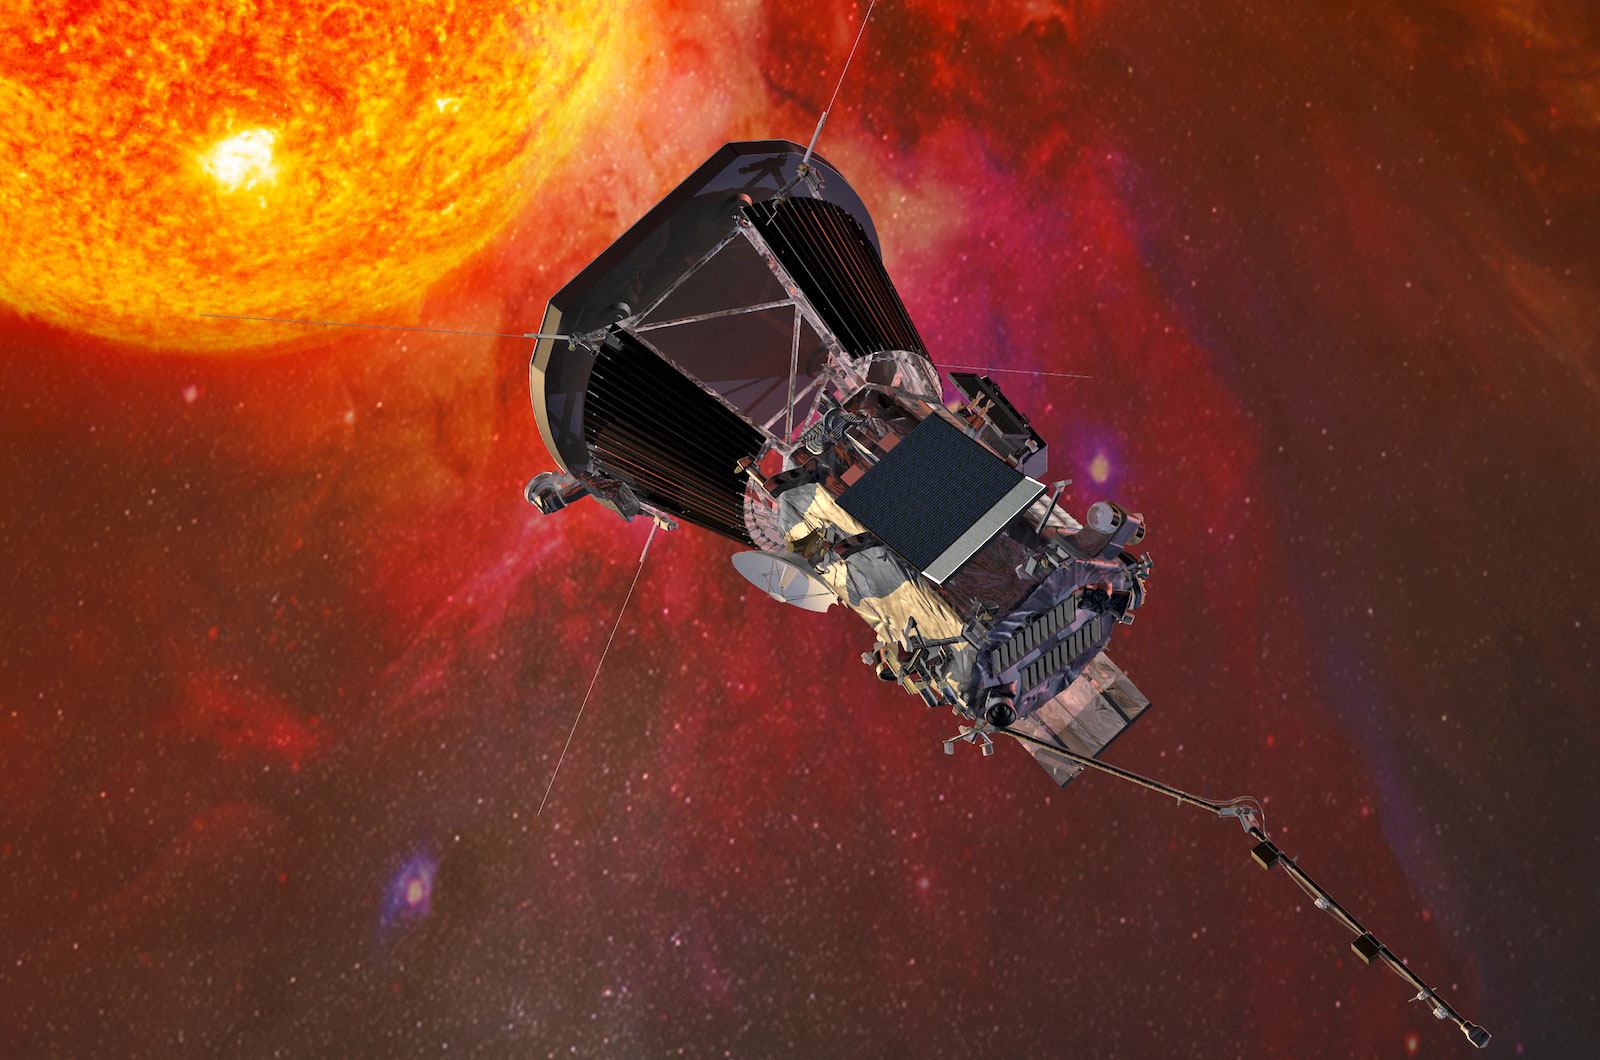 NASA's first mission to touch the sun launches in 2018